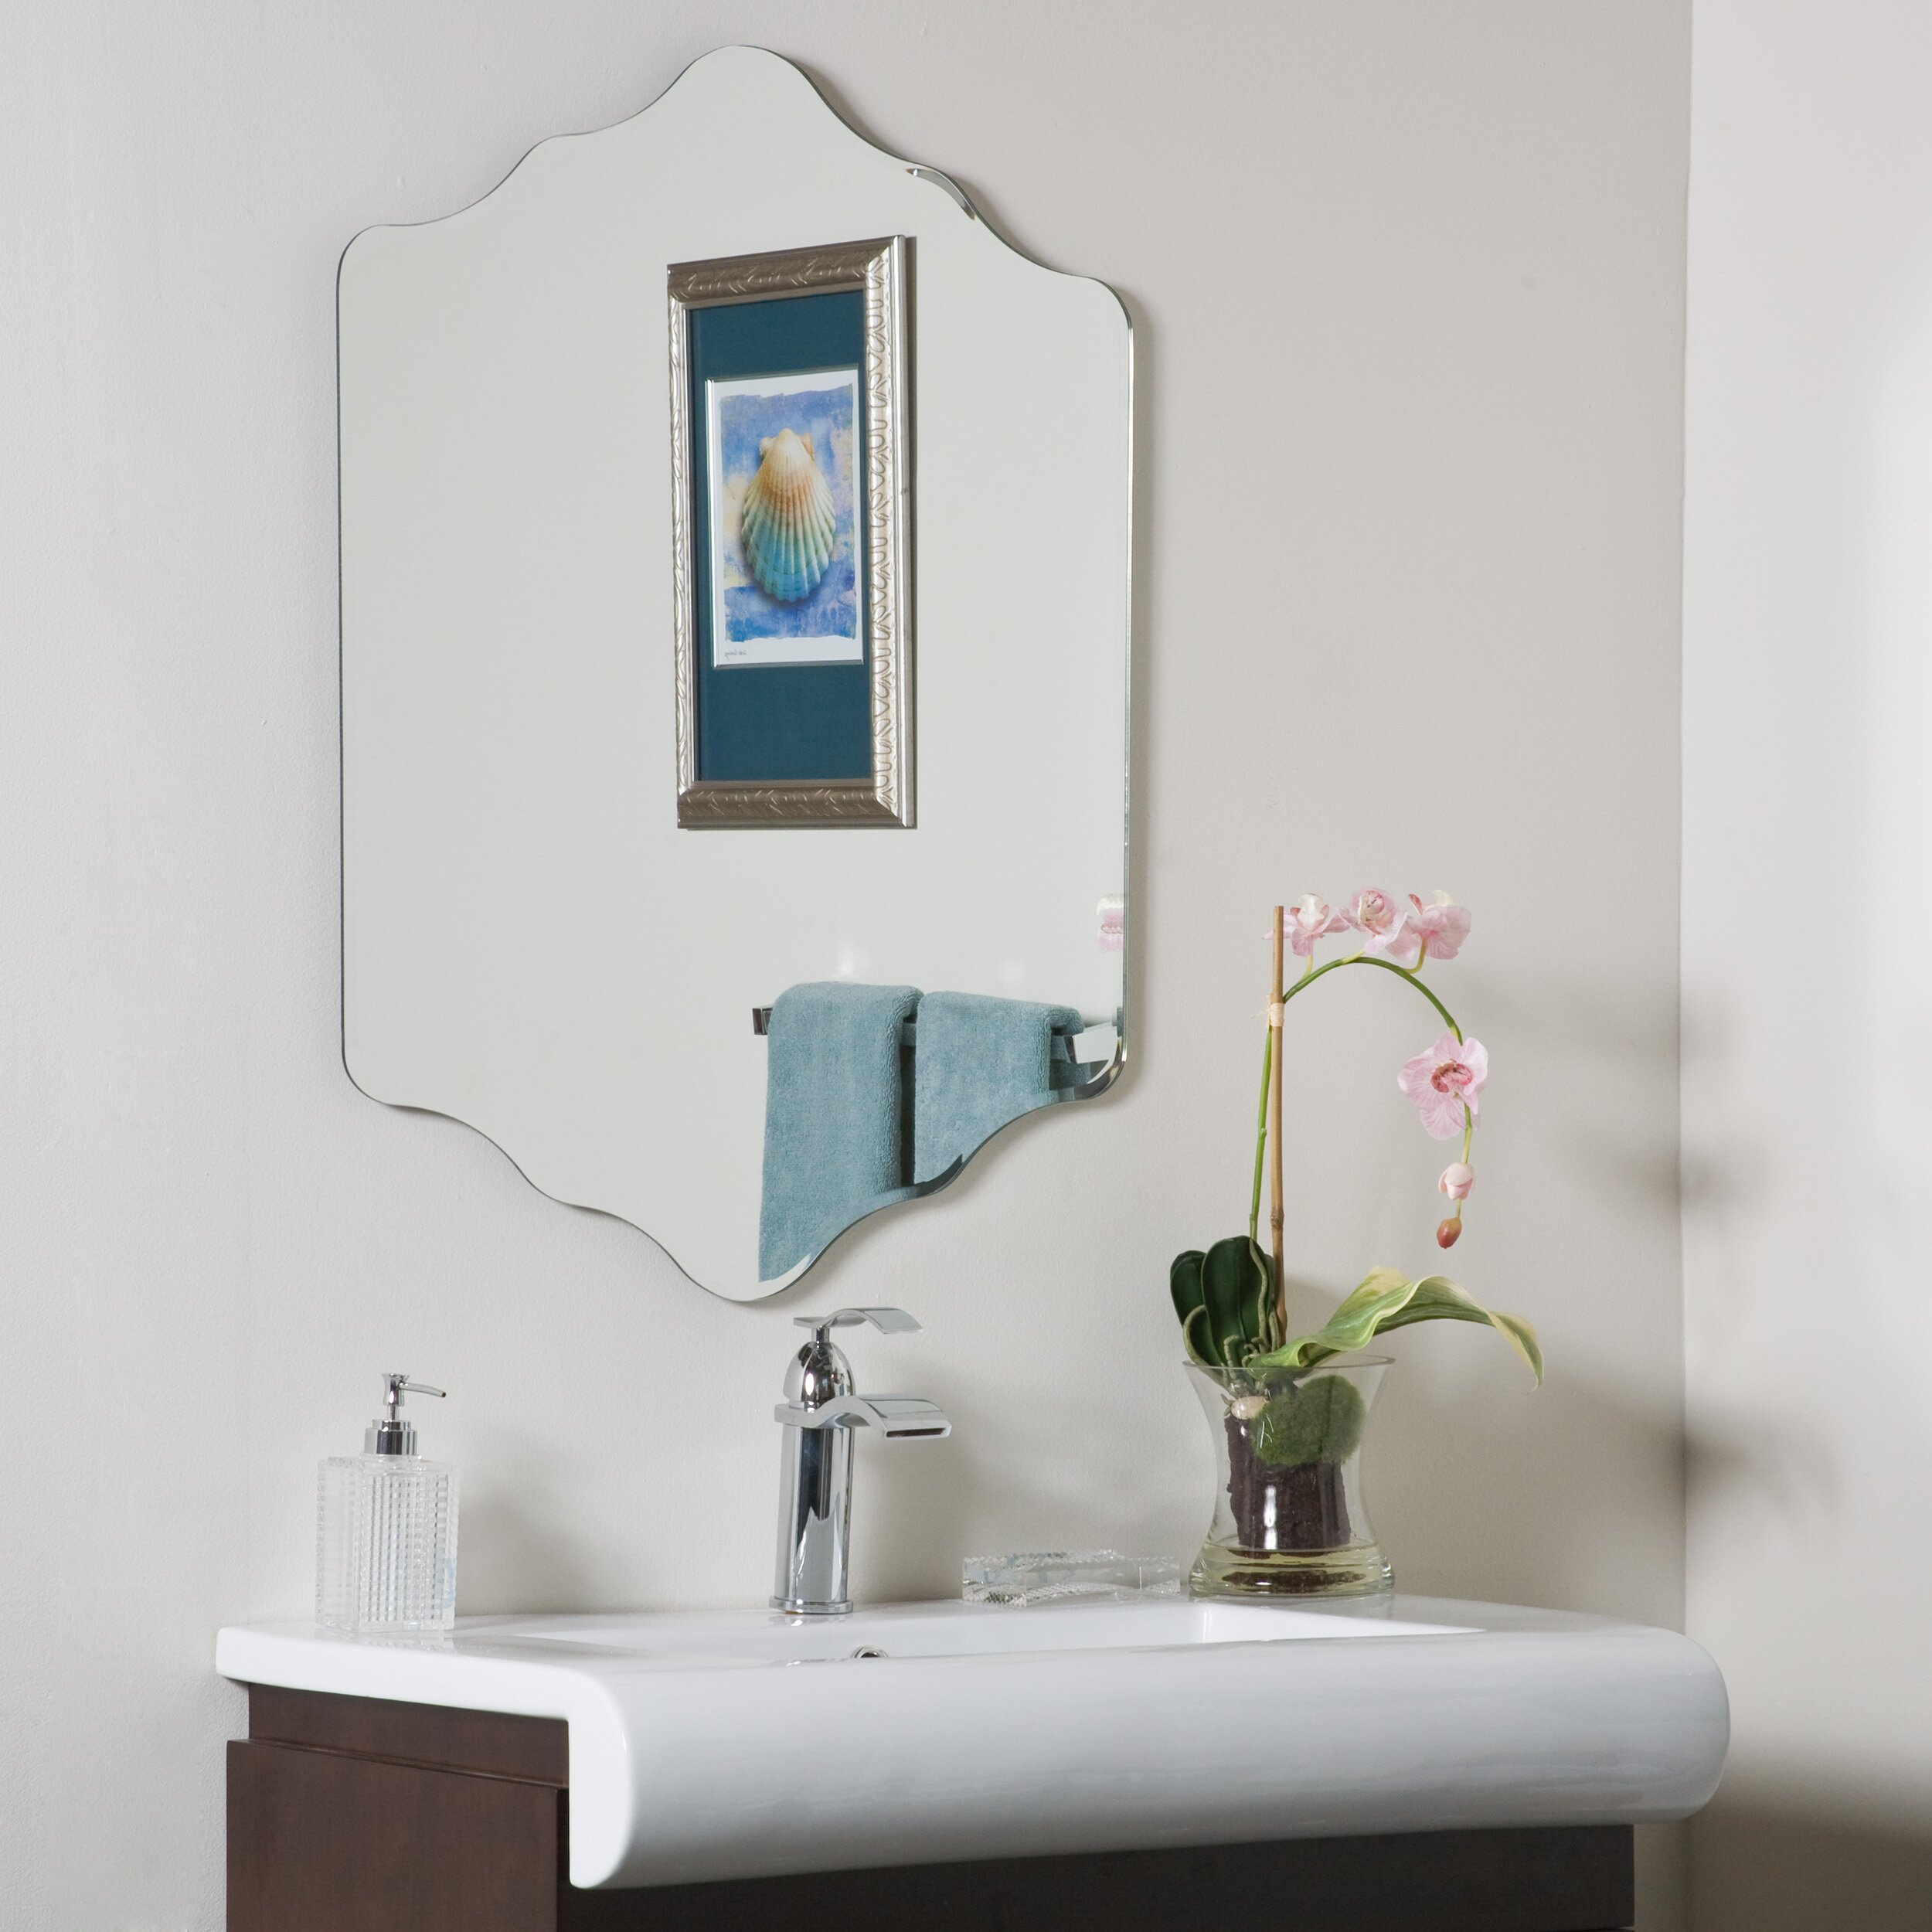 Decor wonderland vandam frameless wall mirror reviews for Frameless wall mirror